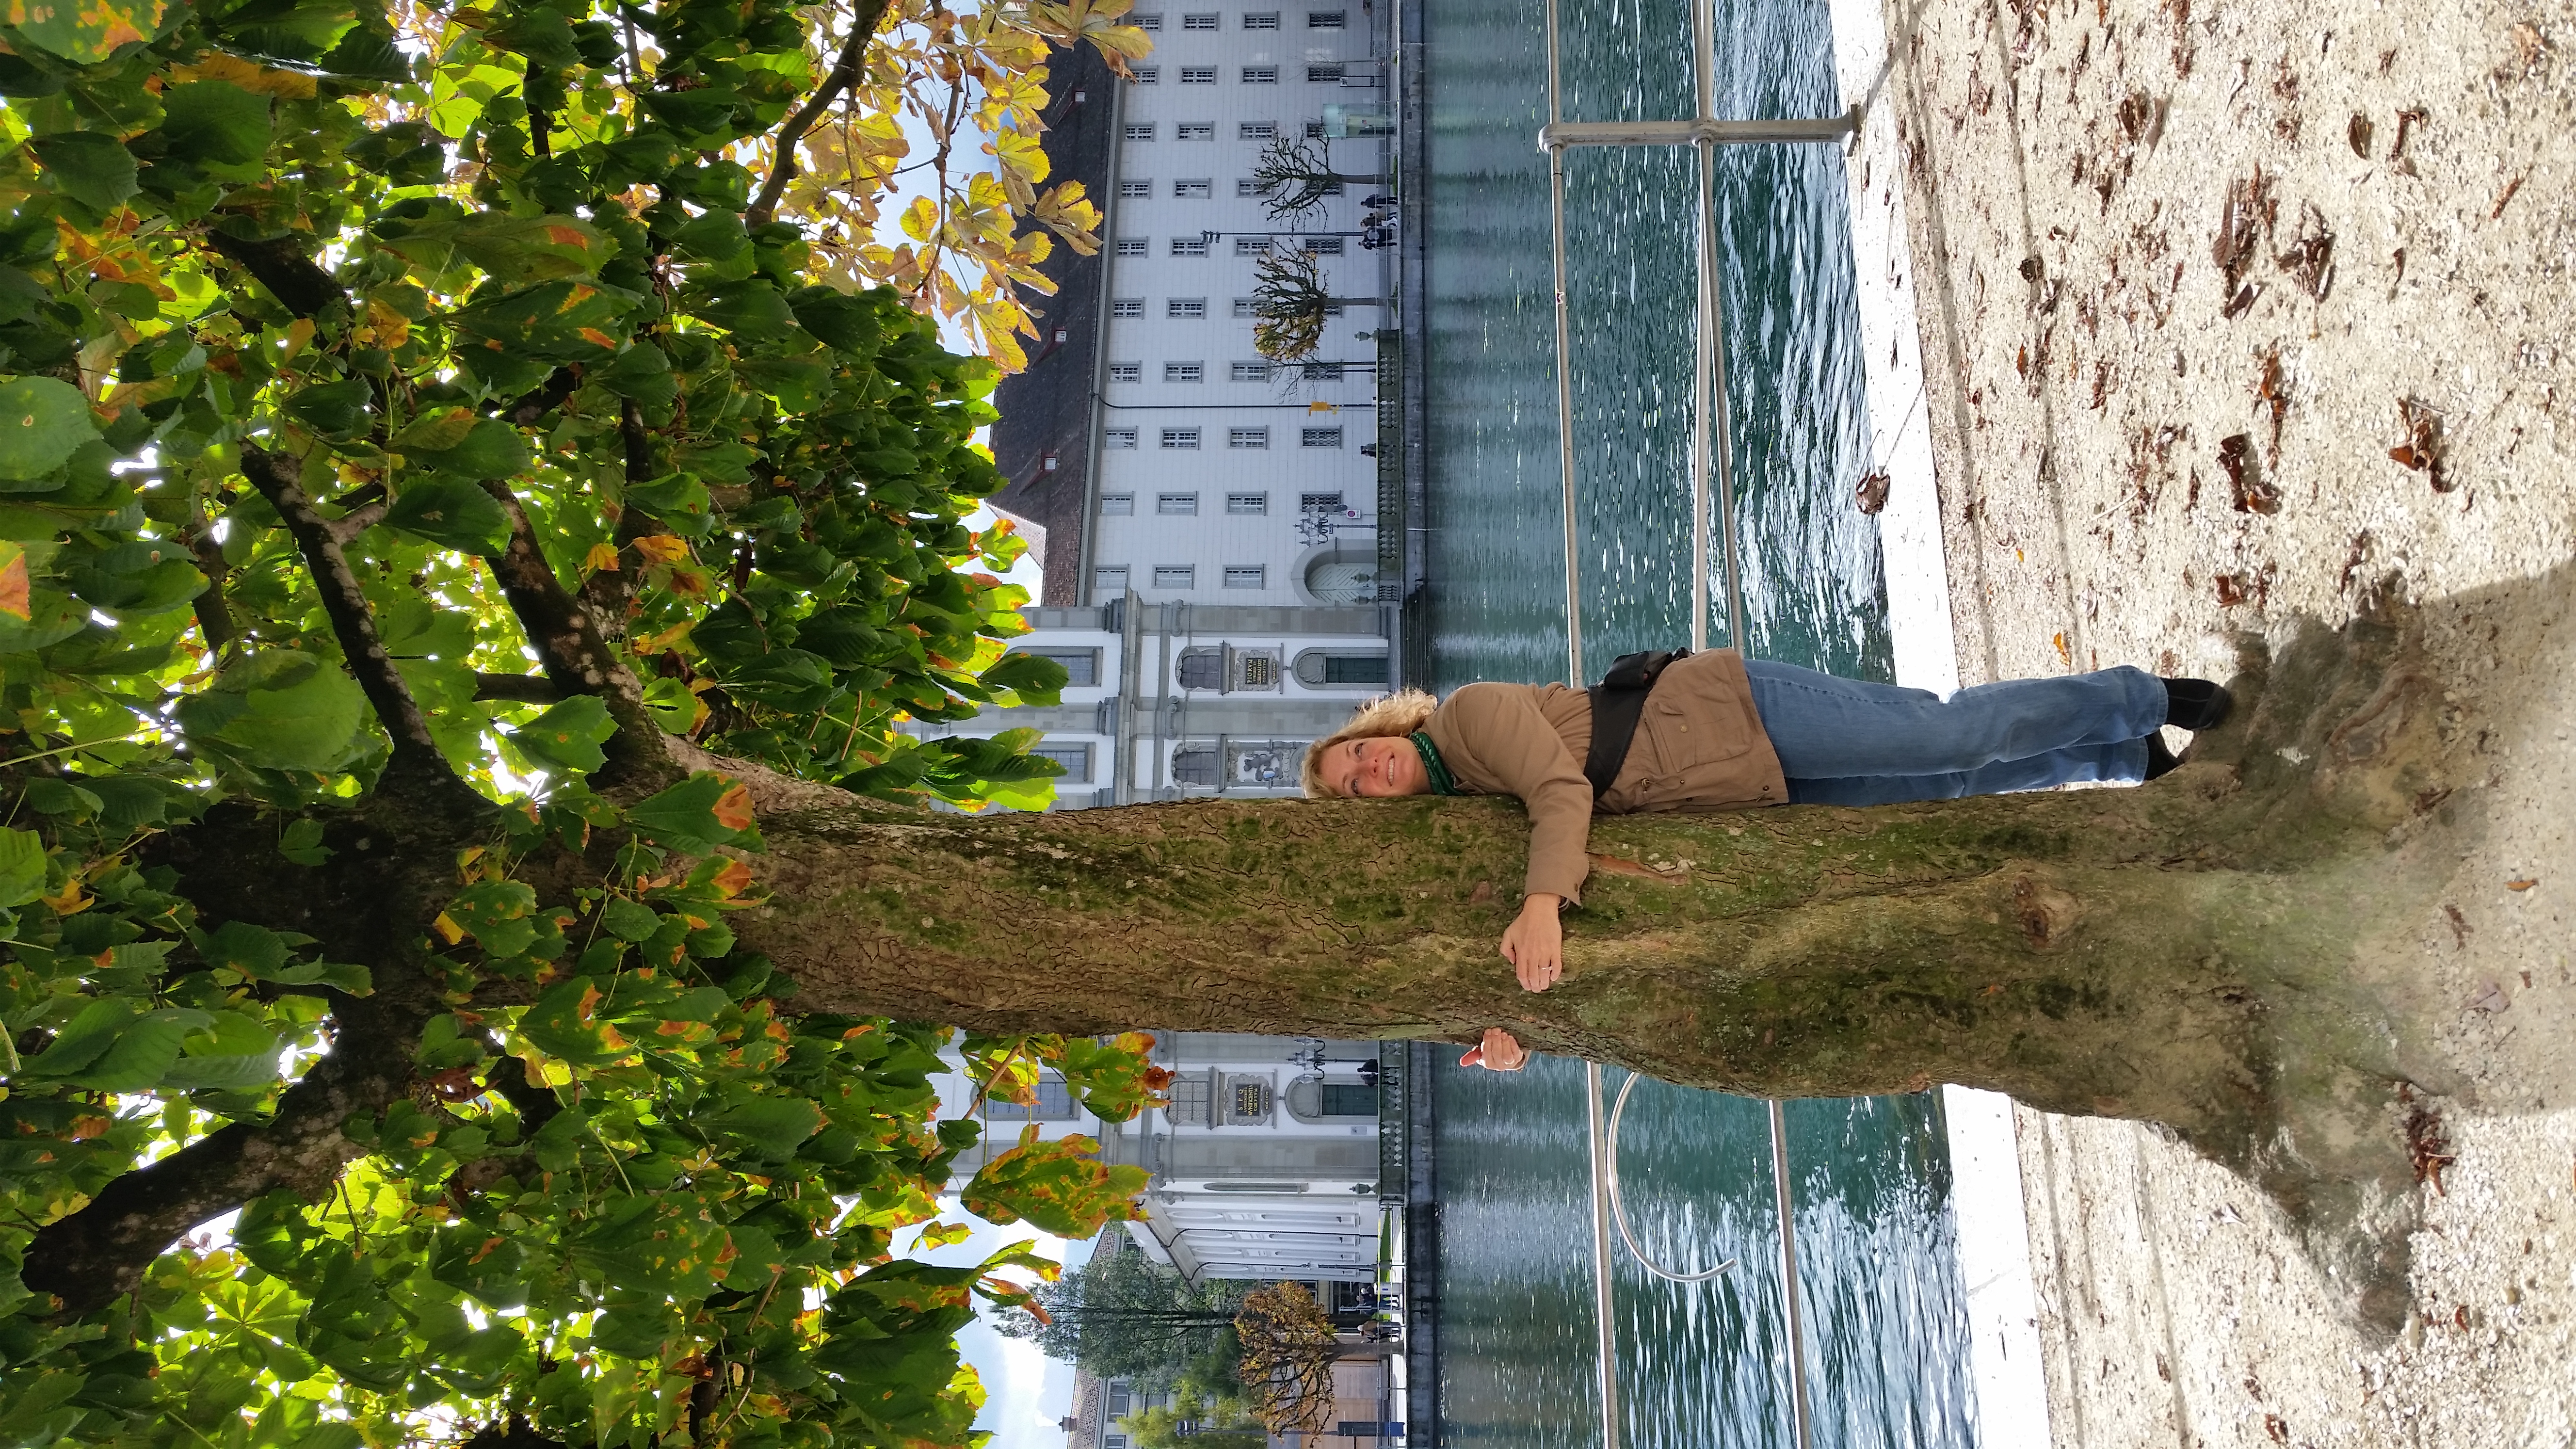 Tree Hugging in Luzern